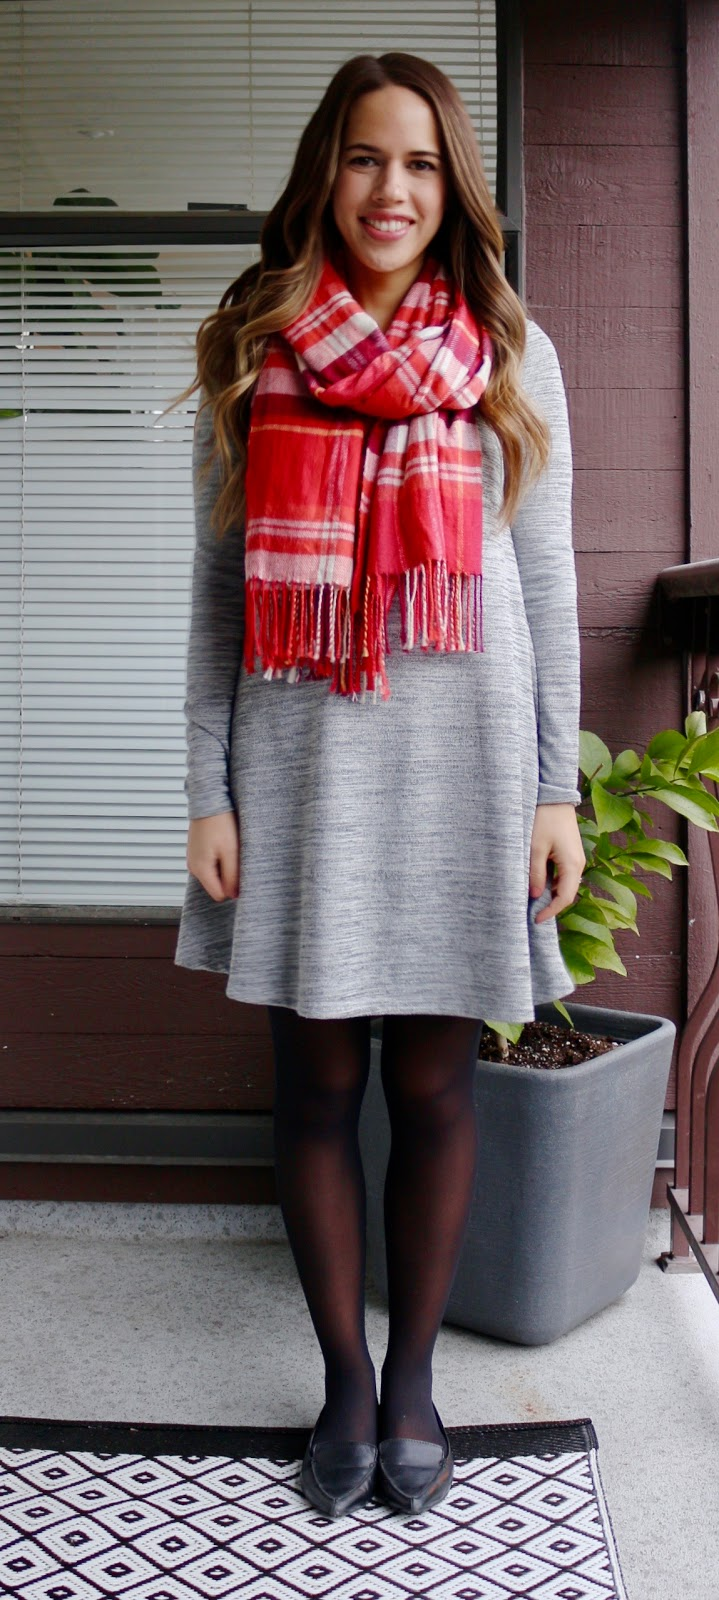 Jules in Flats - January Work Outfits (Swing Dress with Plaid Scarf)